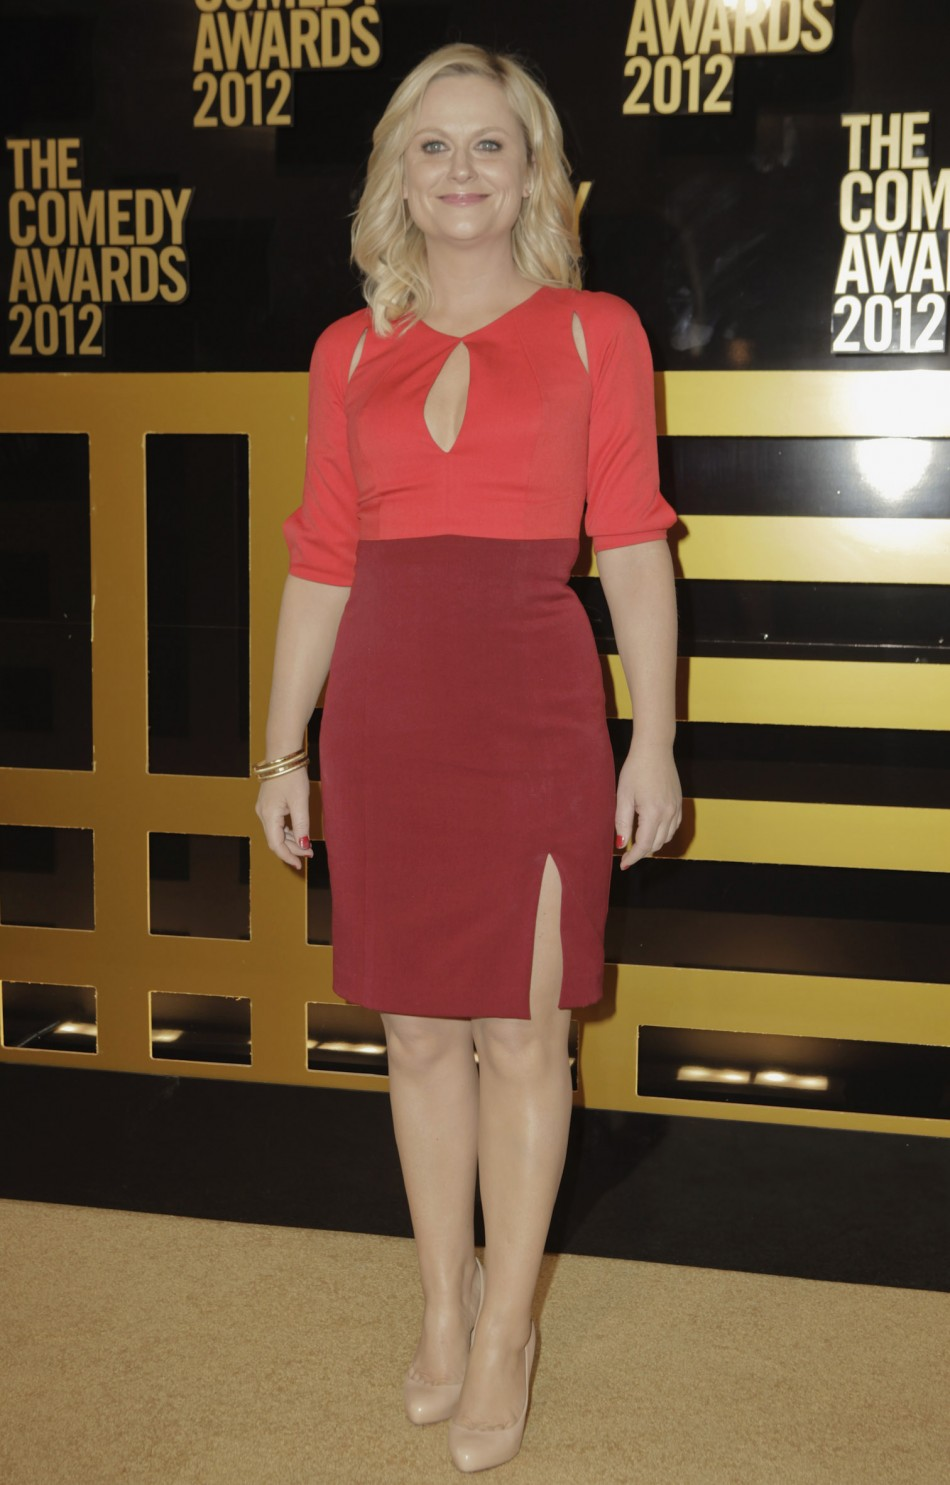 Actress Poehler arrives for the Comedy Awards 2012 in New York City